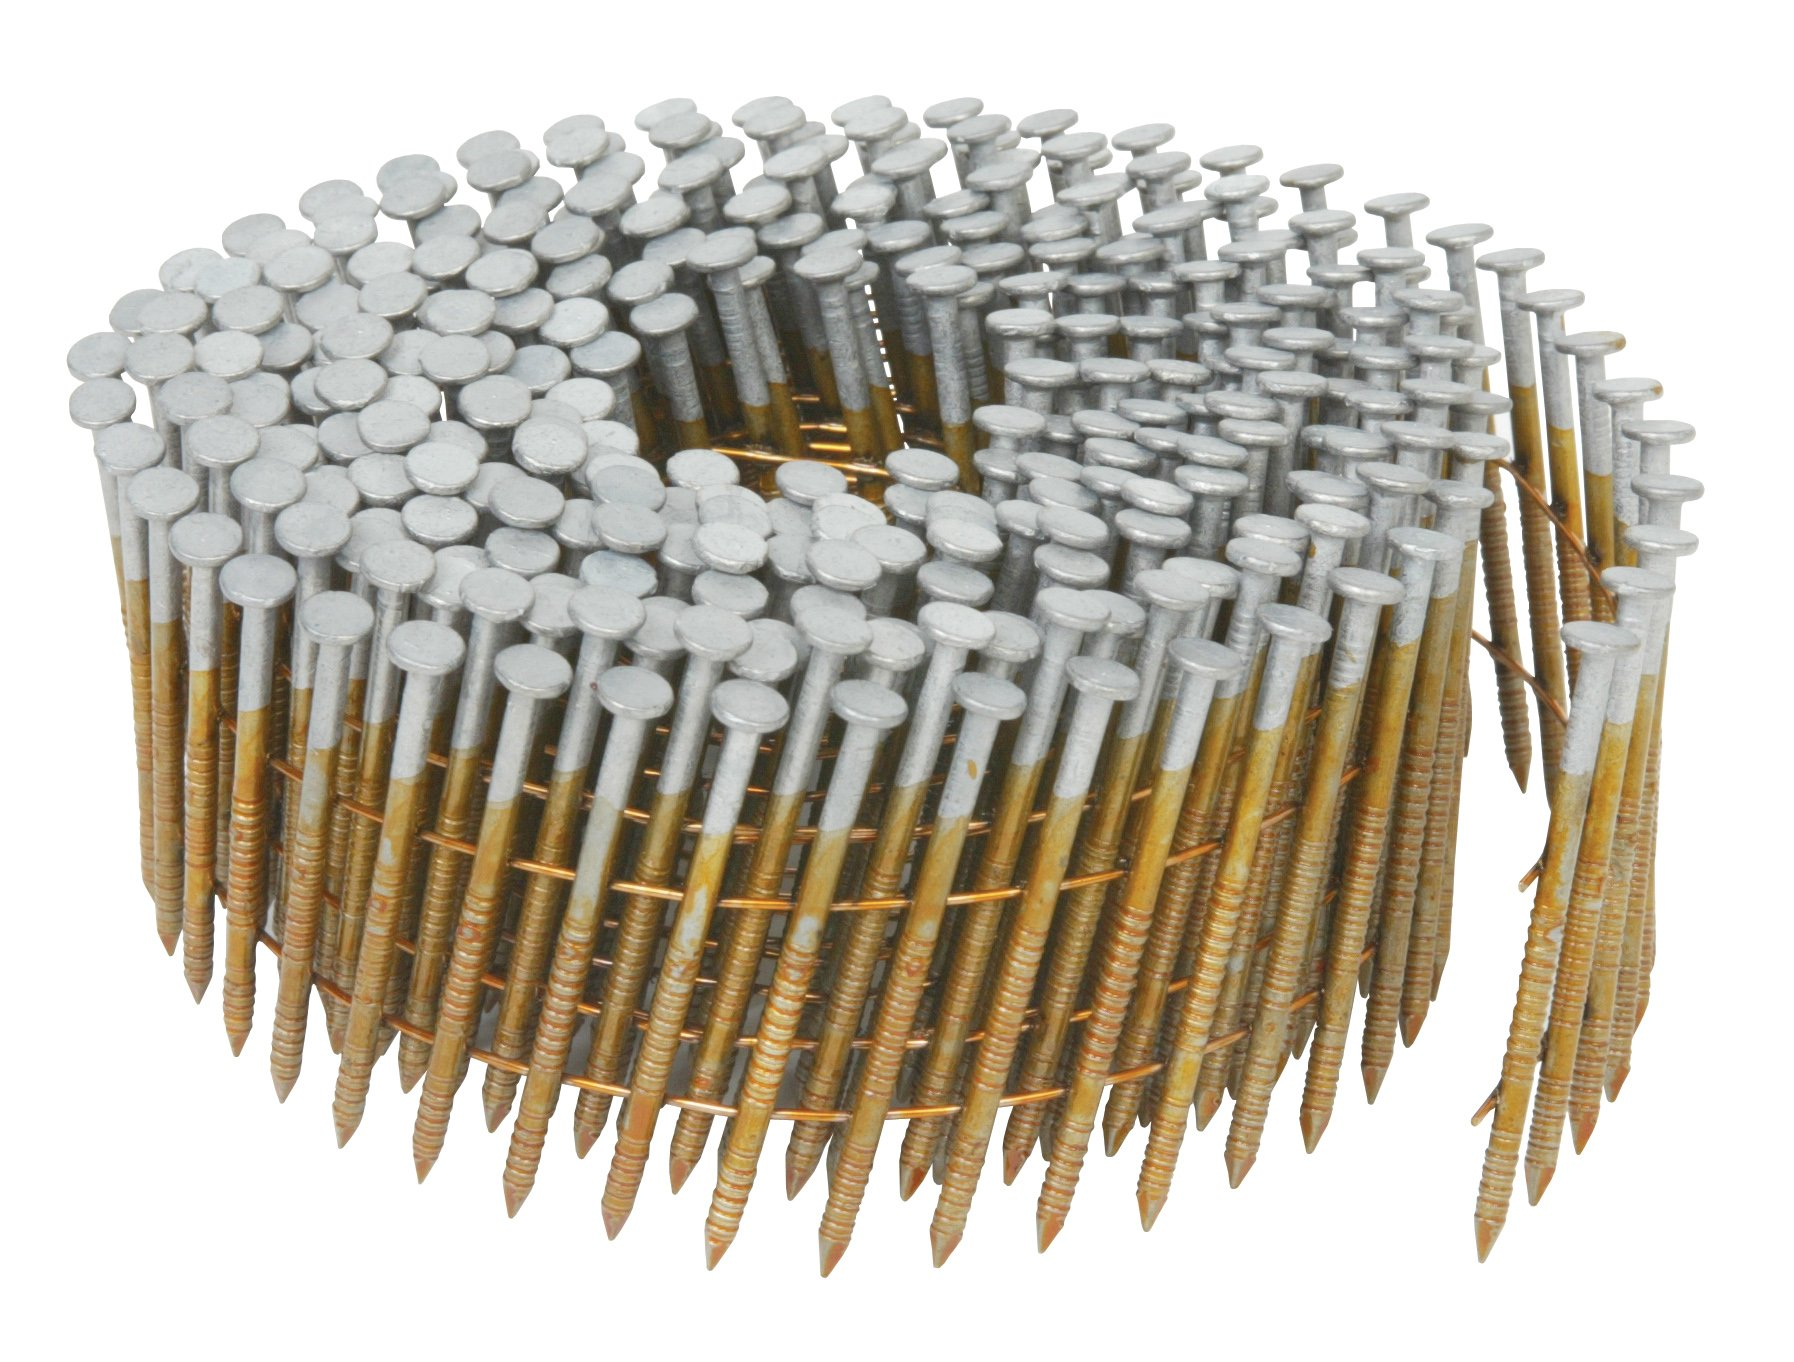 Metabo HPT 13363HPT 1-3/4-Inch x 0.092-Inch Collated Wire Coil Siding Nails, Full Round-Head, Ring Shank, Hot-Dipped Galvanized, 3600-Pack